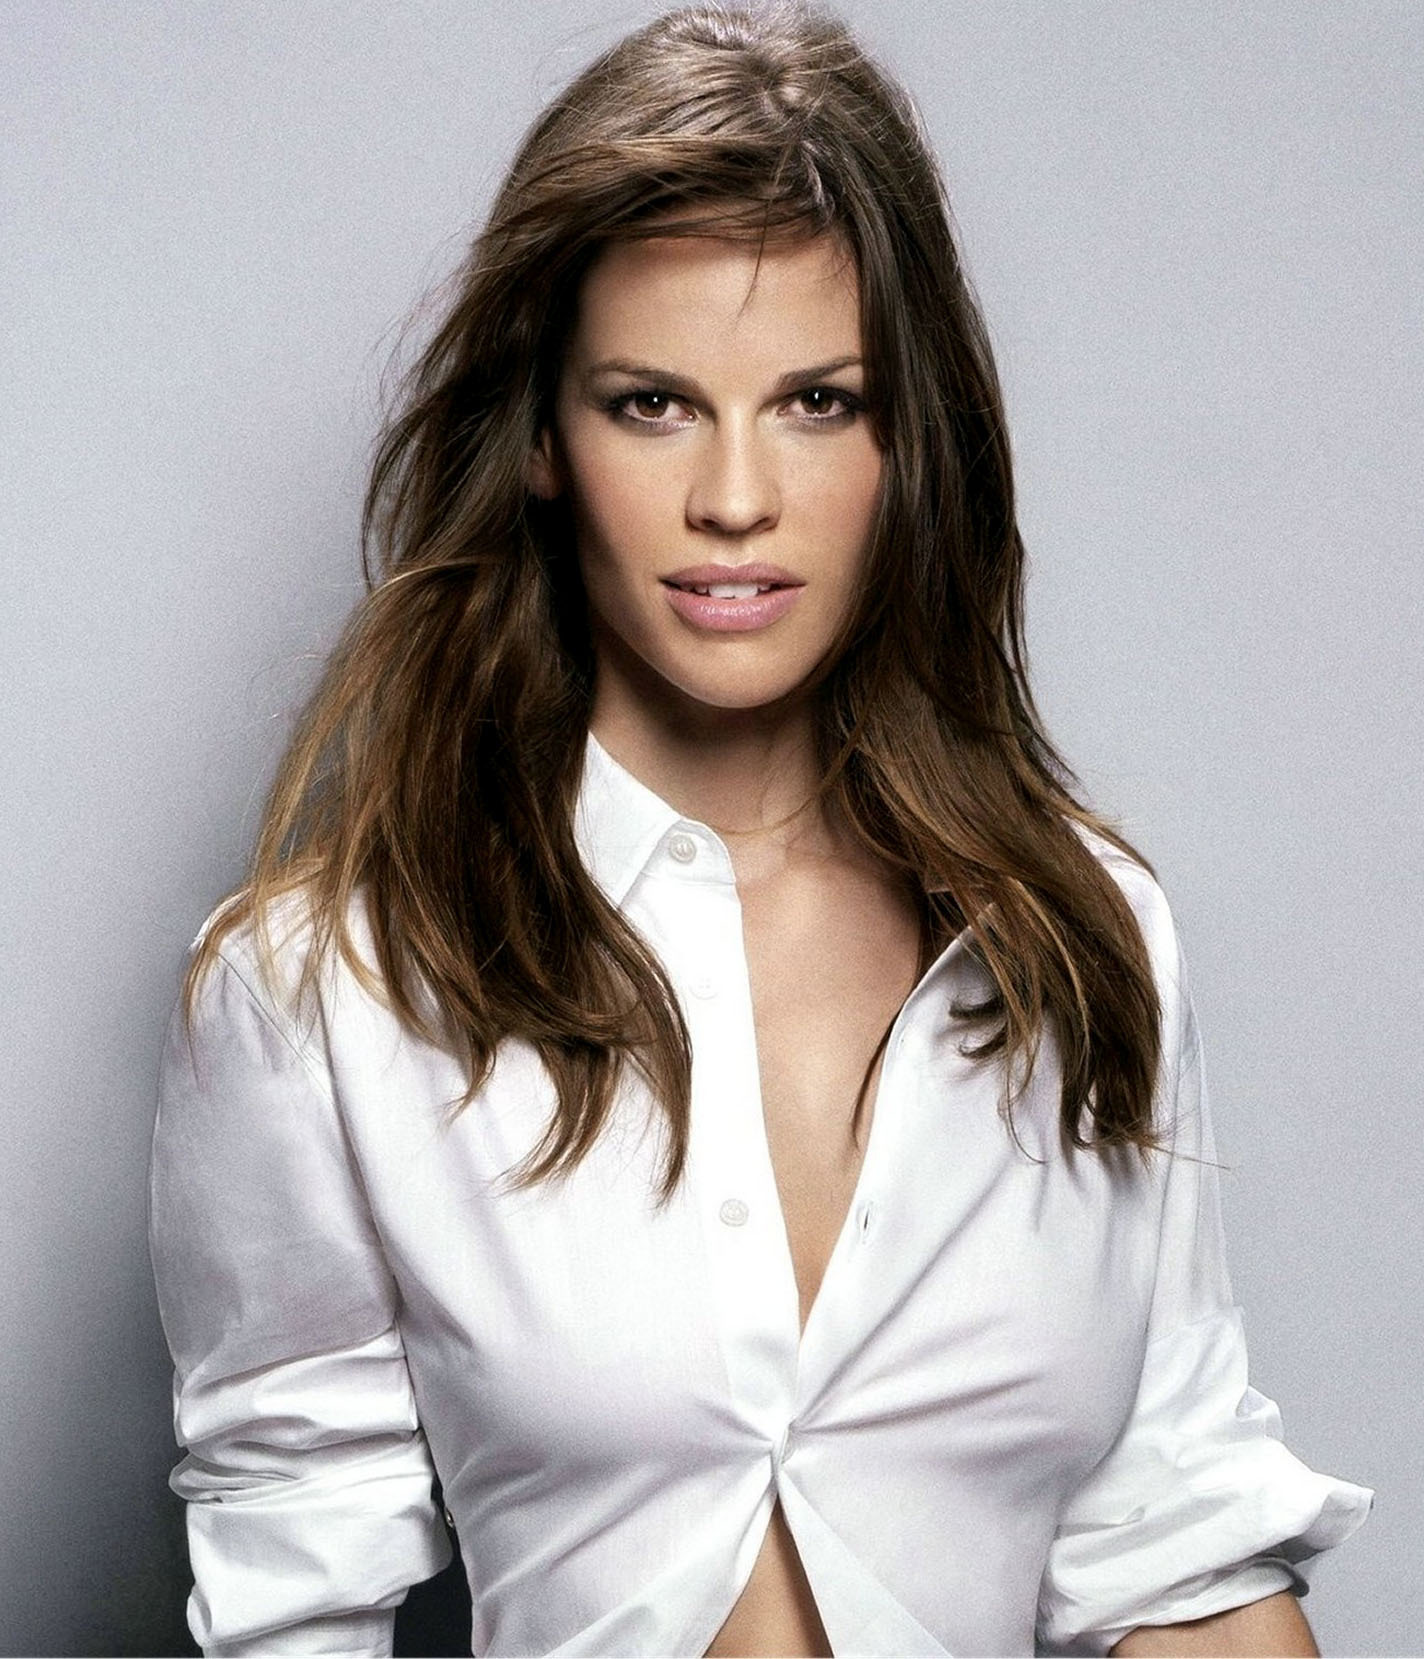 Hilary Swank Backgrounds on Wallpapers Vista